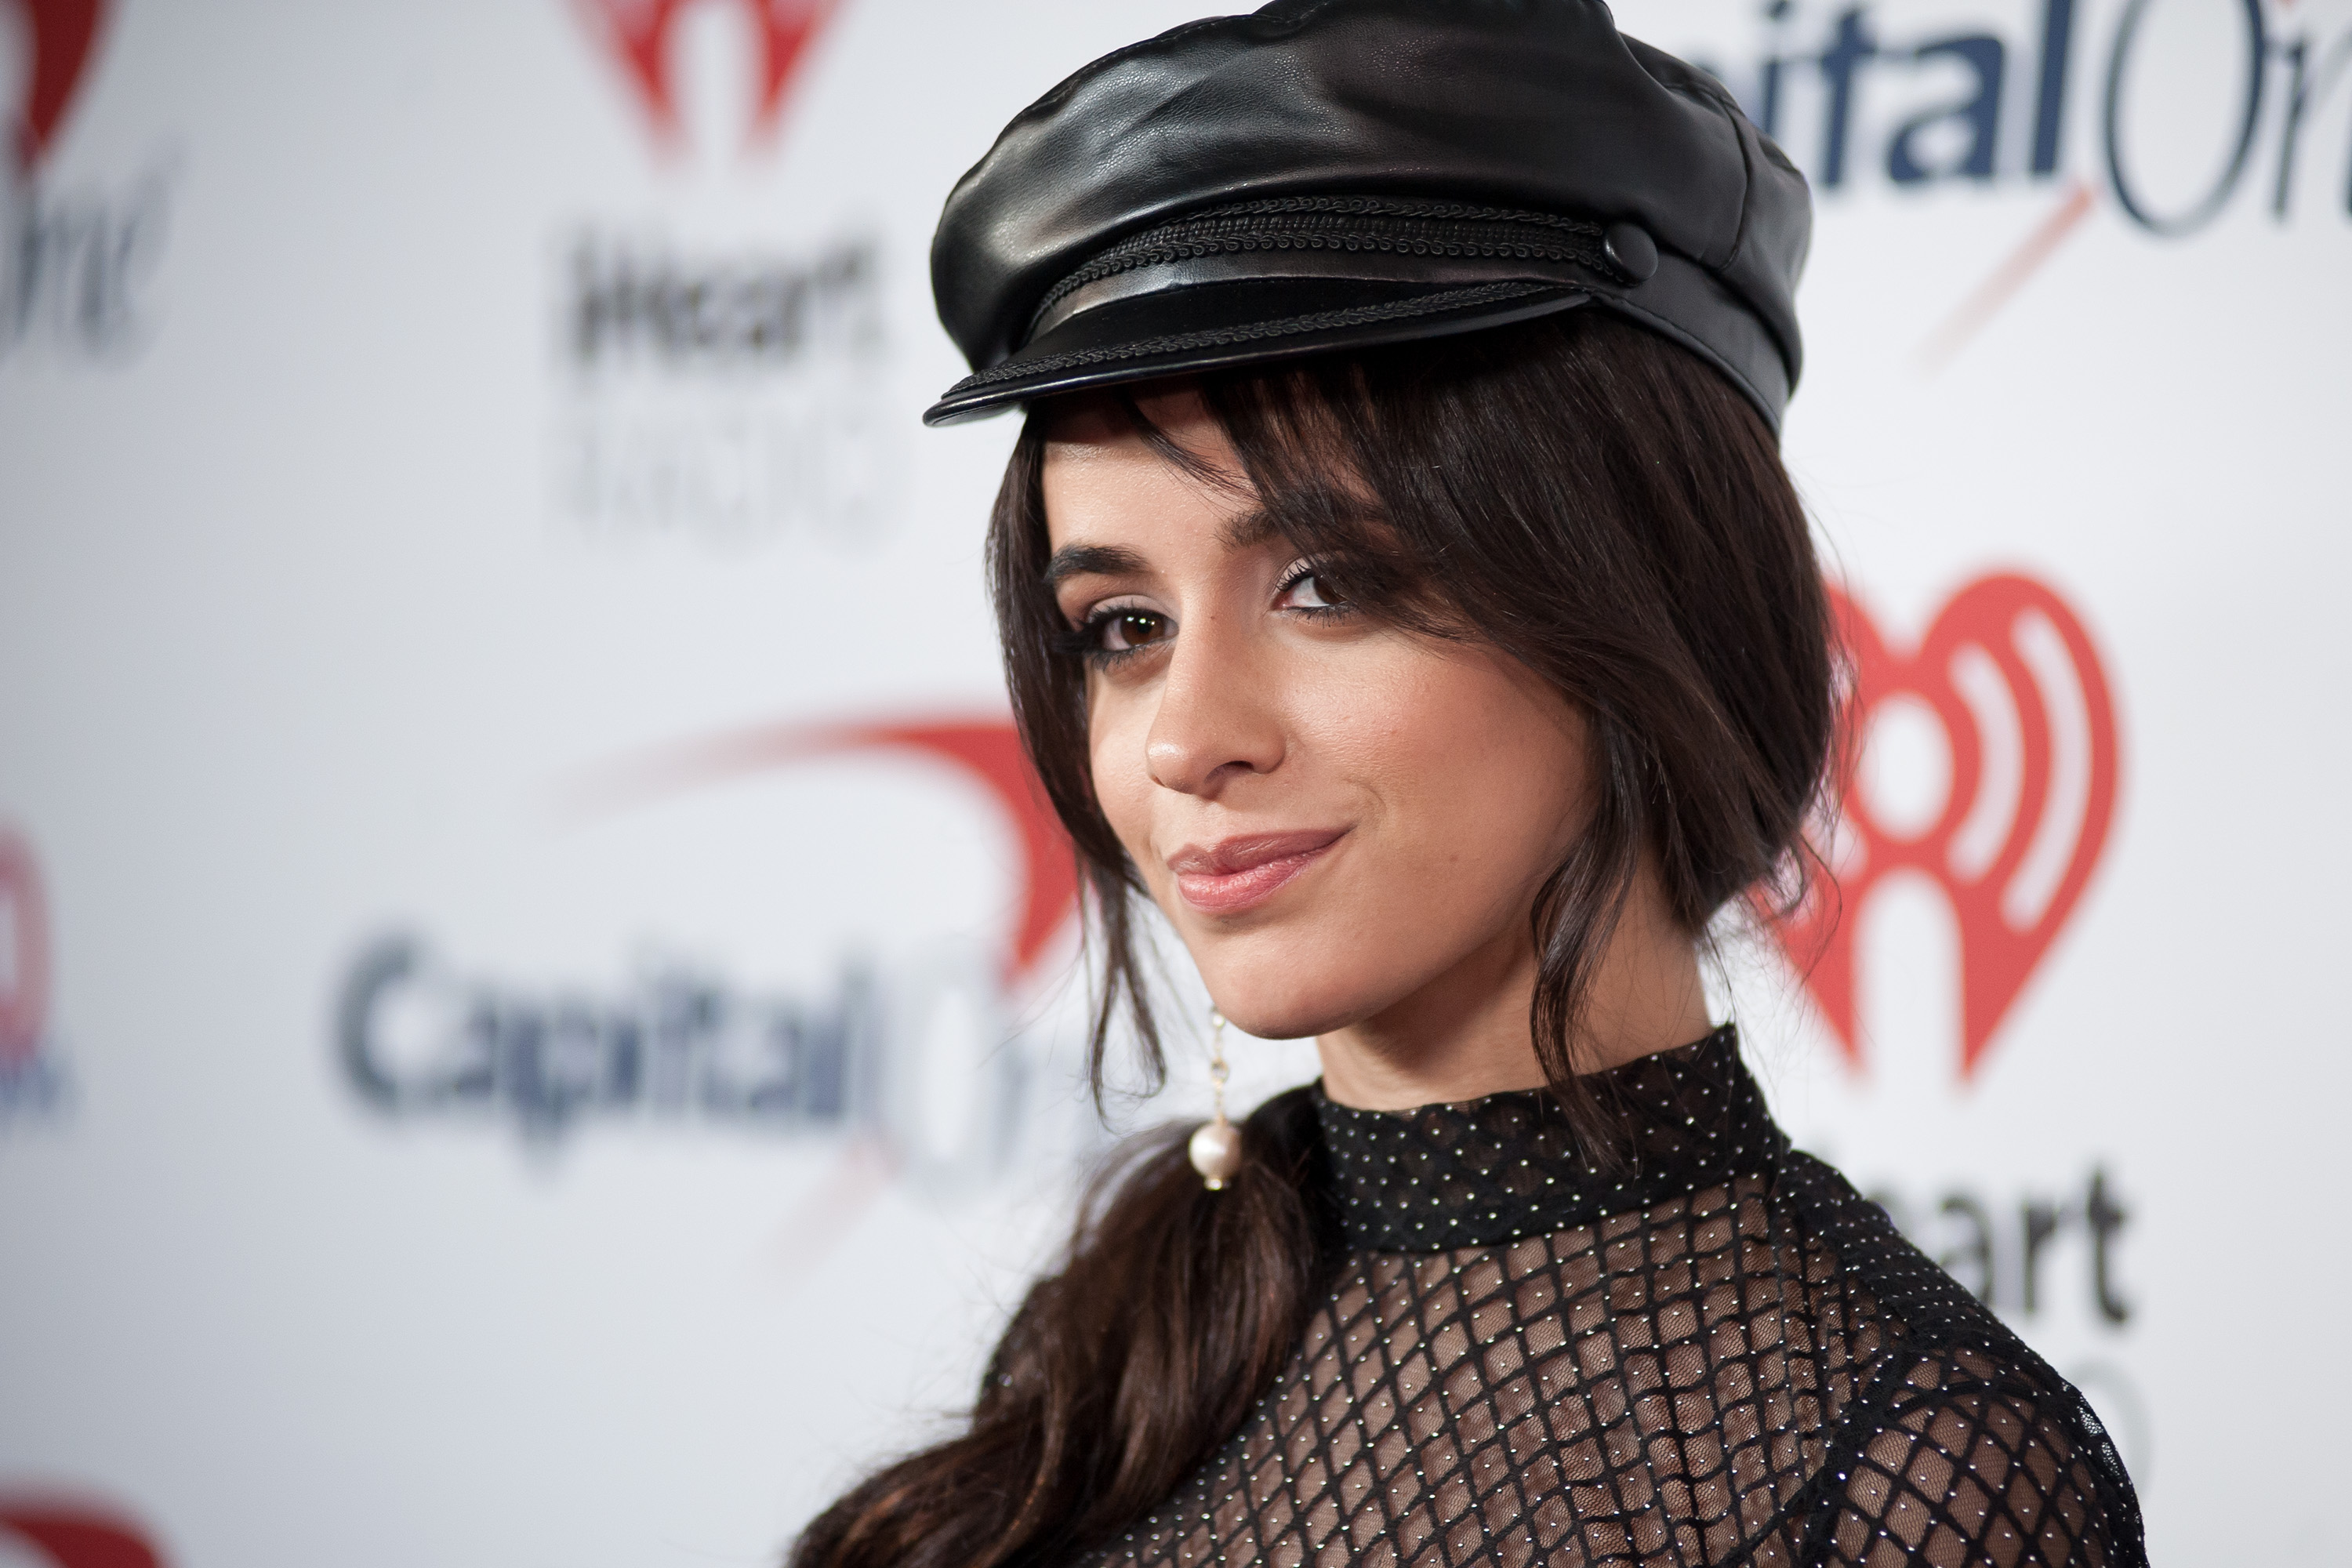 After a full year removed from Fifth Harmony, Camila Cabello has finally released her debut solo album! Click through to see some of the best reactions. (Photo: WENN)